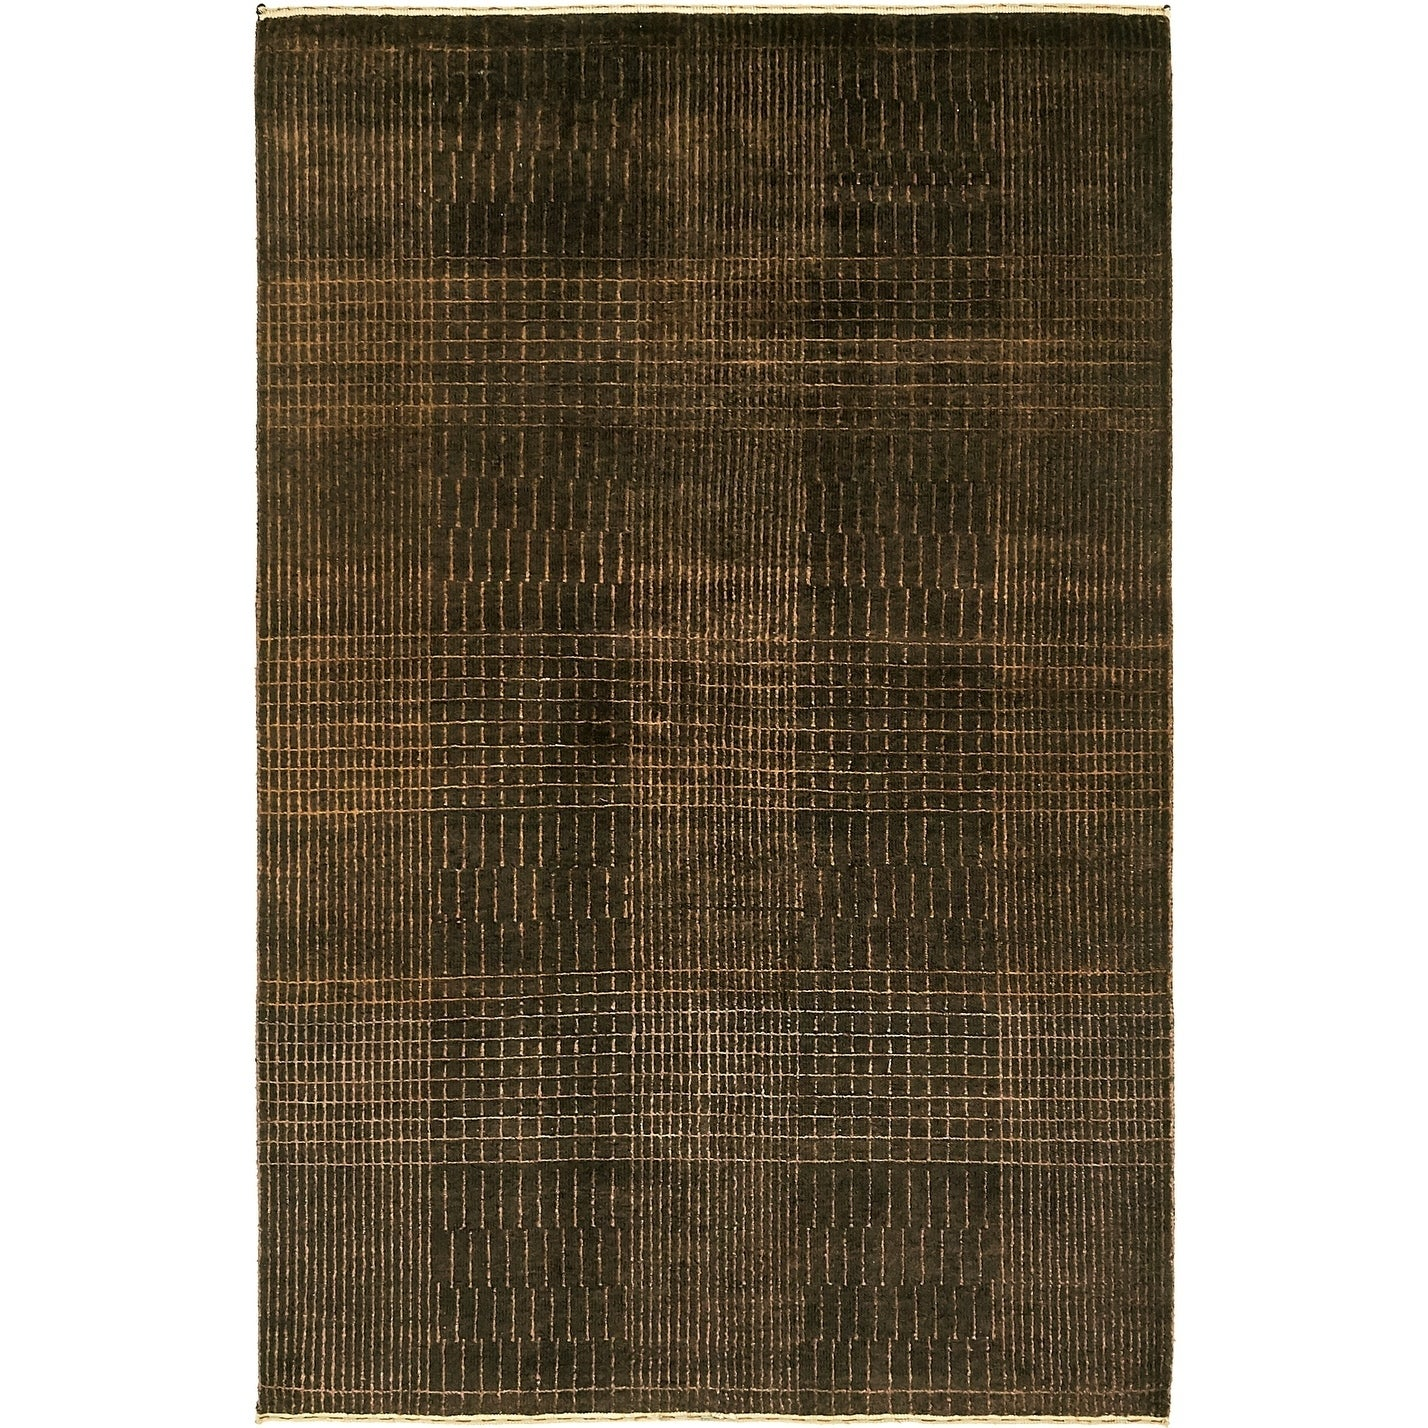 Hand Knotted Kashkuli Gabbeh Silk & Wool Area Rug - 4 x 6 2 (Brown - 4 x 6 2)